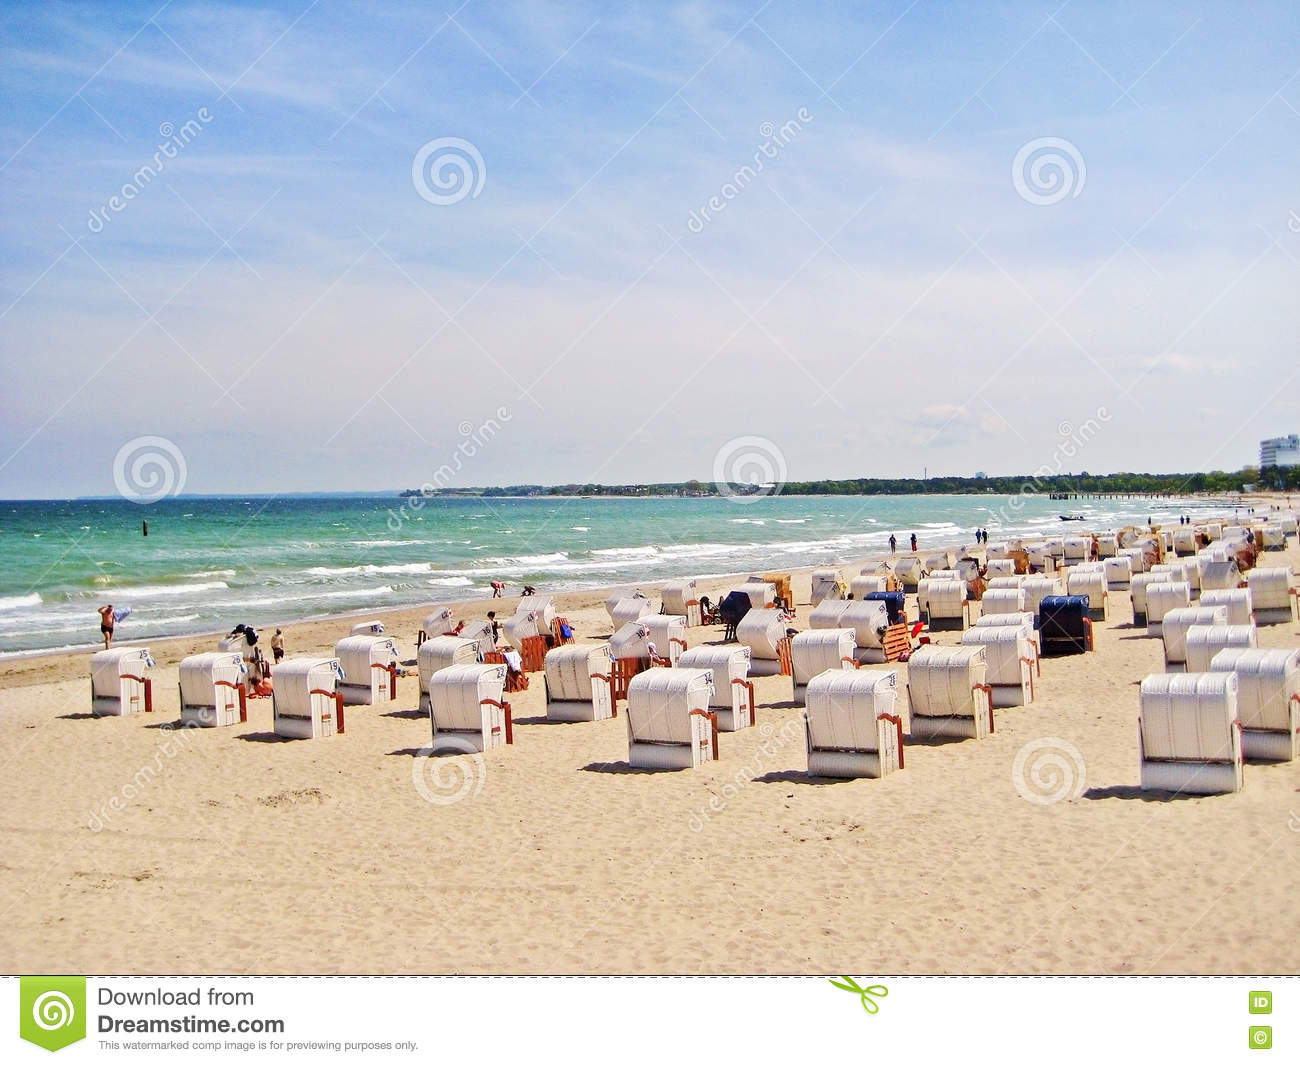 Timmendorfer Strand Germany  city images : Strand, Germany May 23, 2008: View over beach of Timmendorfer Strand ...